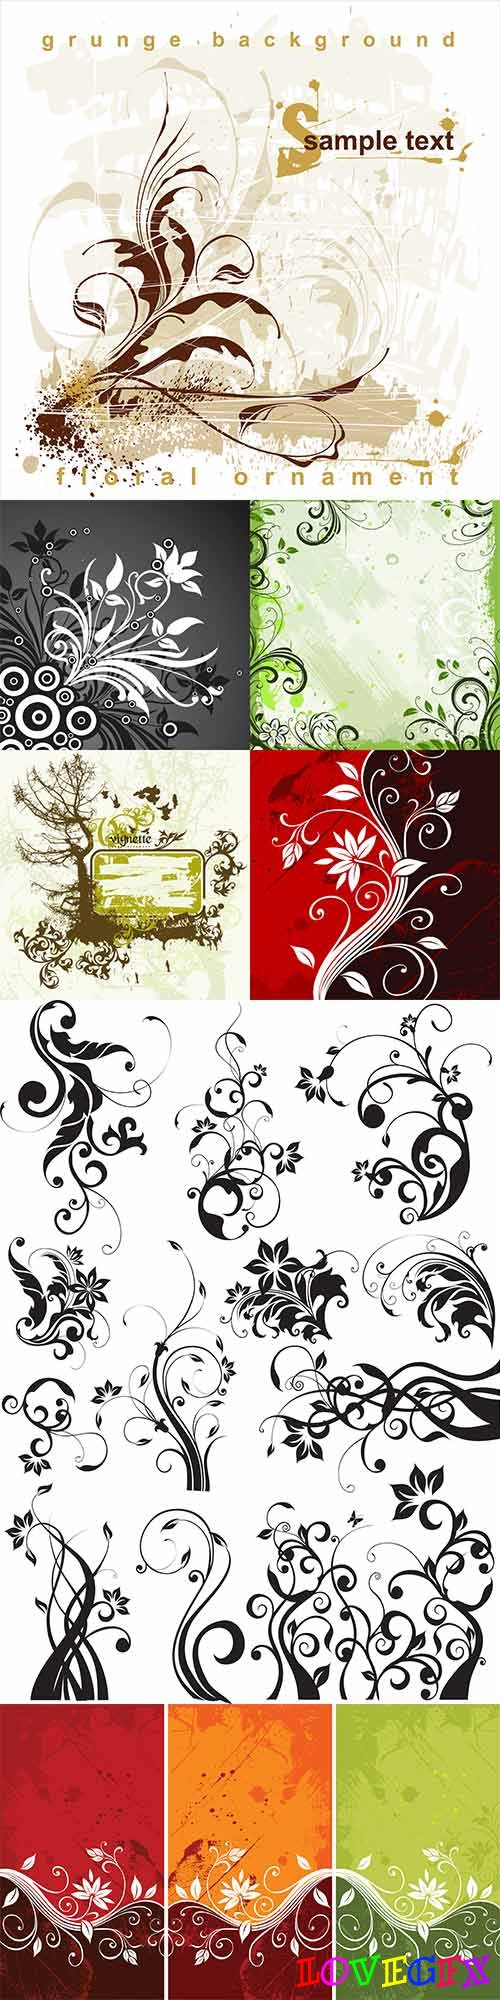 Plant design vector elements - 6